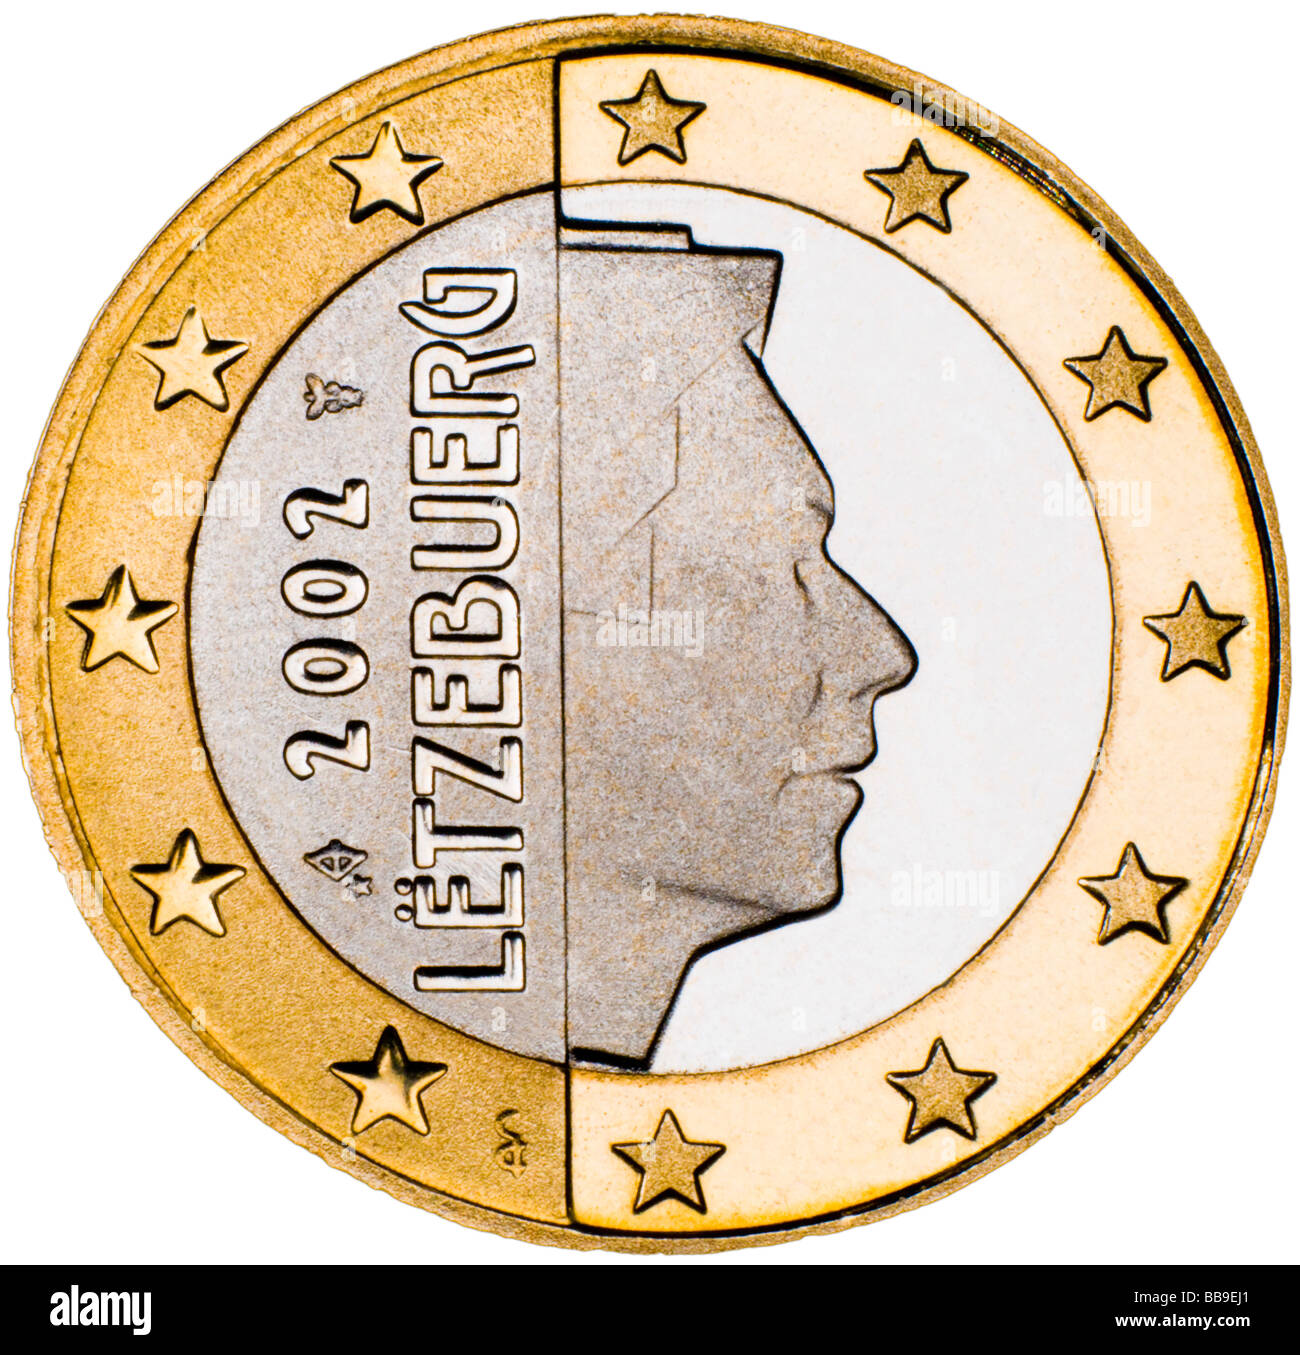 Luxemburg 1 Euro Coin reverse - Stock Image